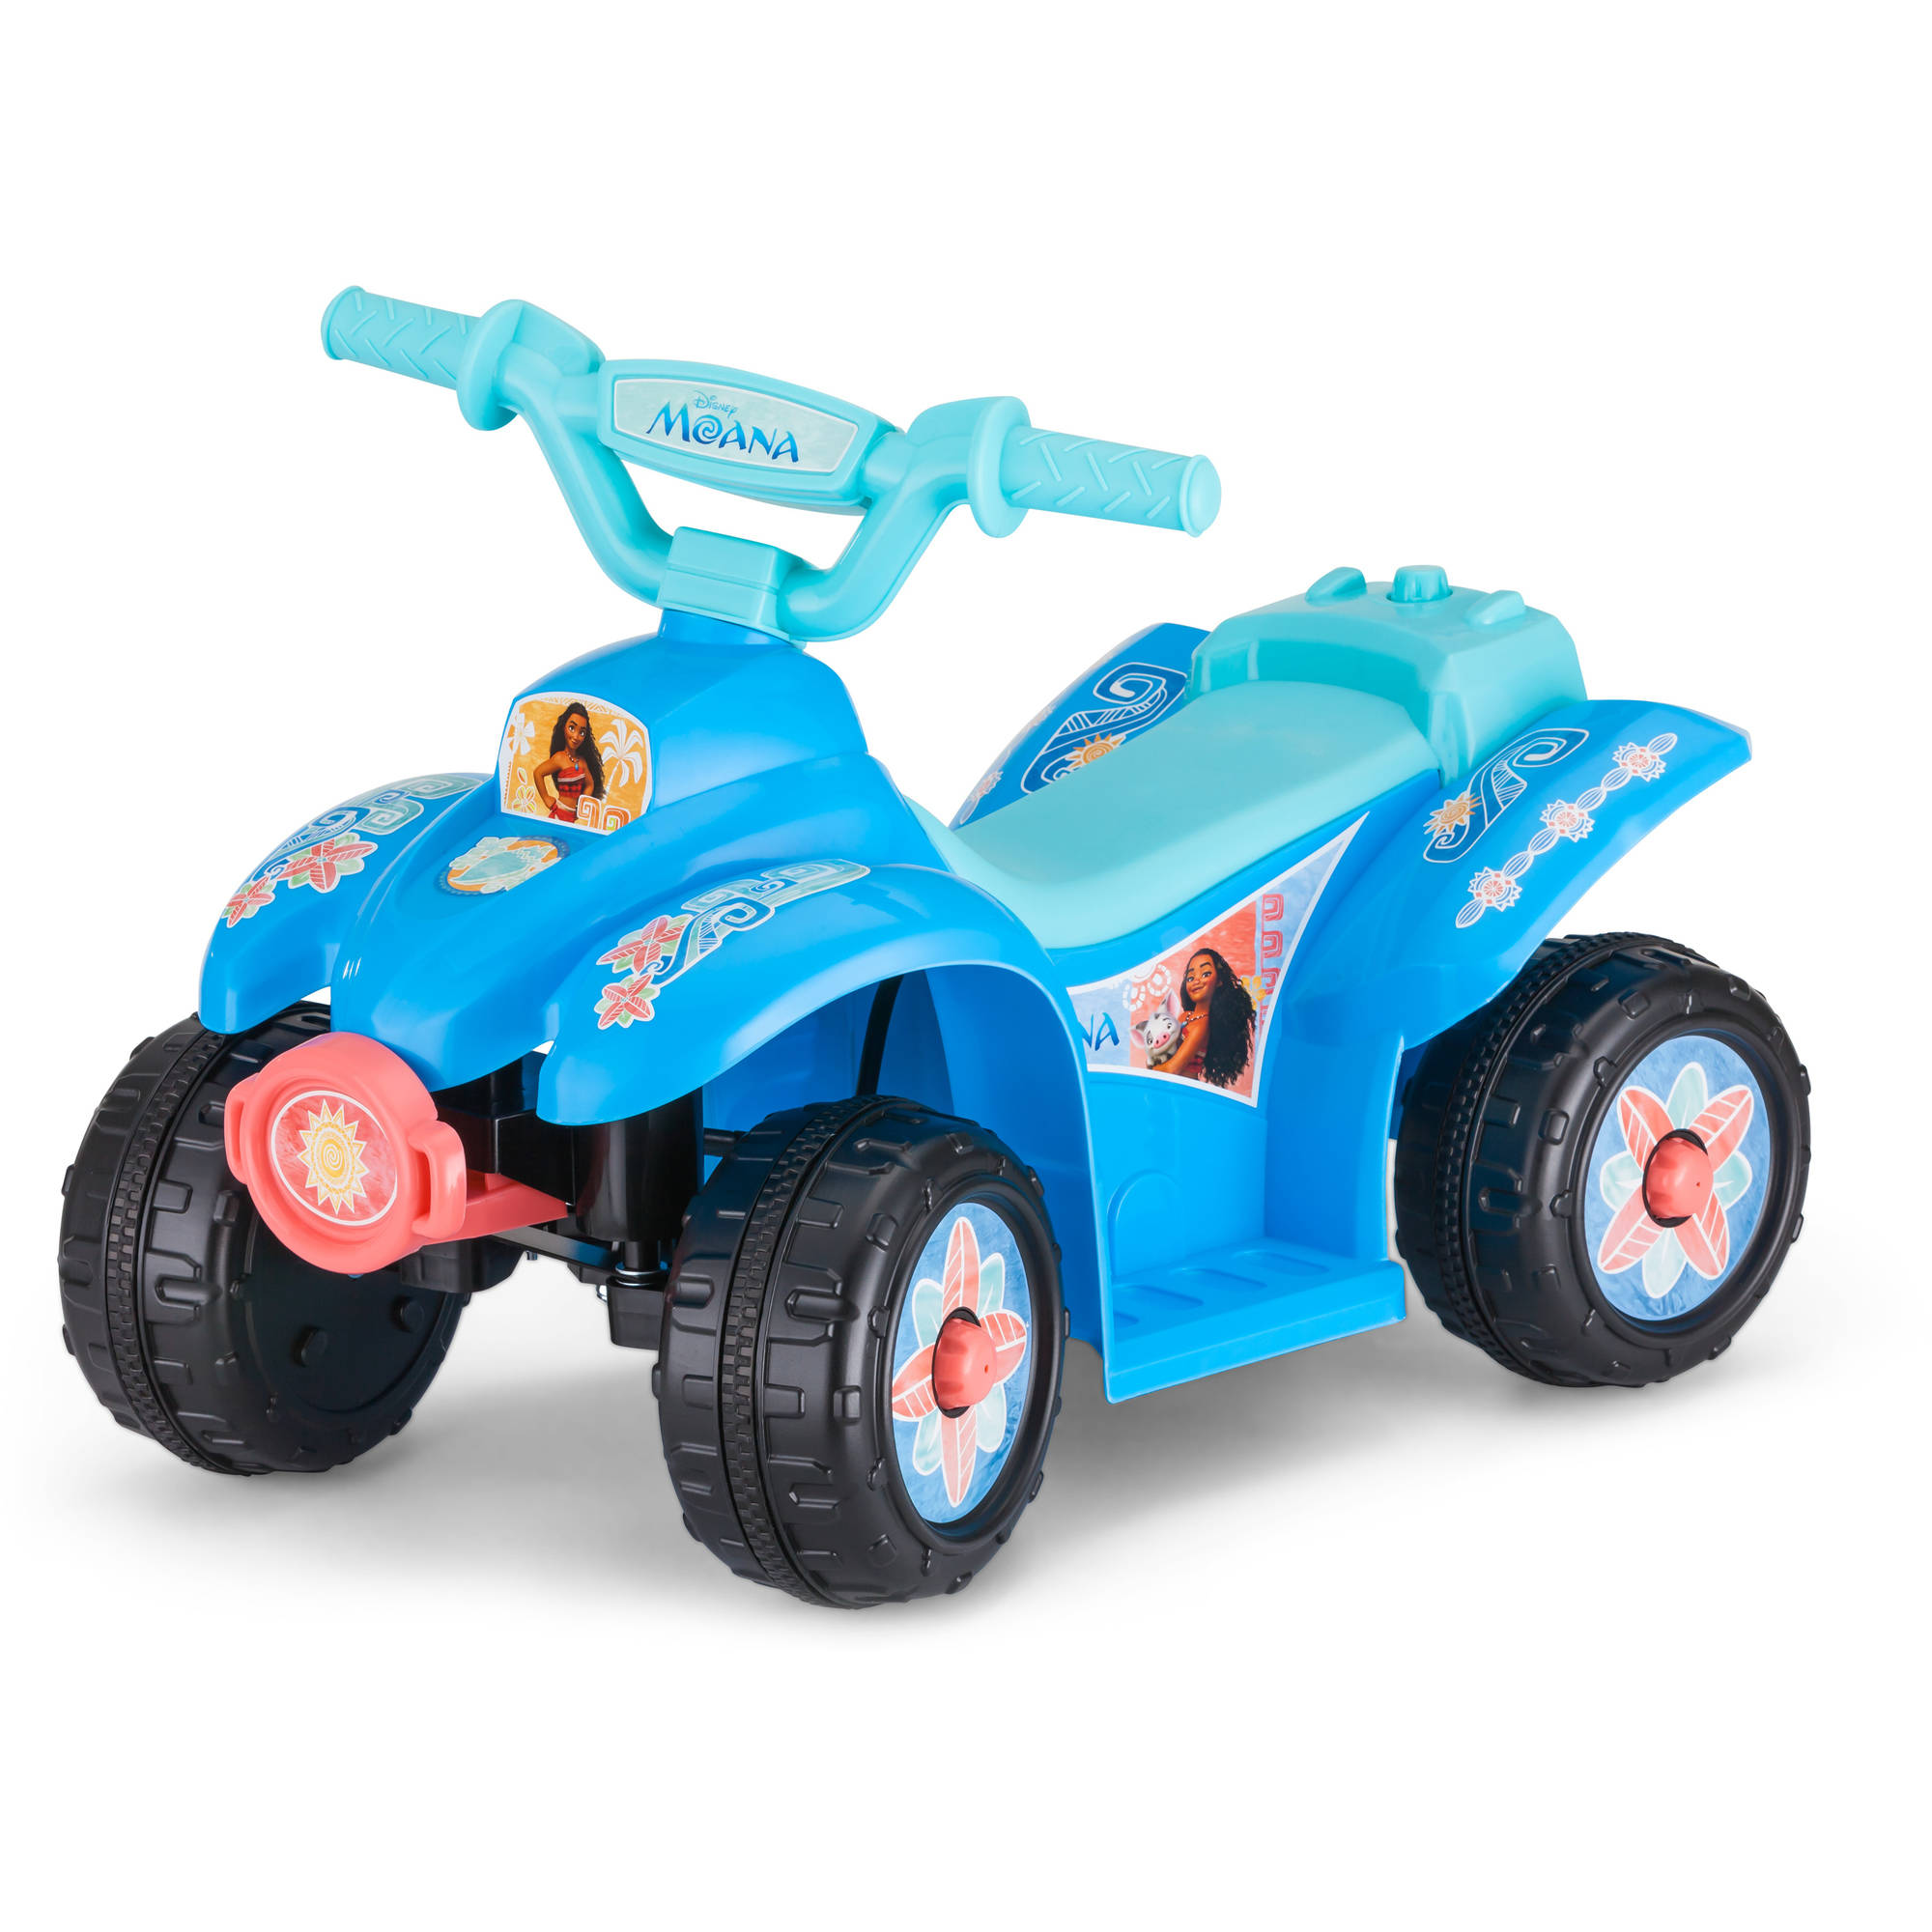 Kid Trax Disney Moana 6V Battery-Operated Quad Ride-On